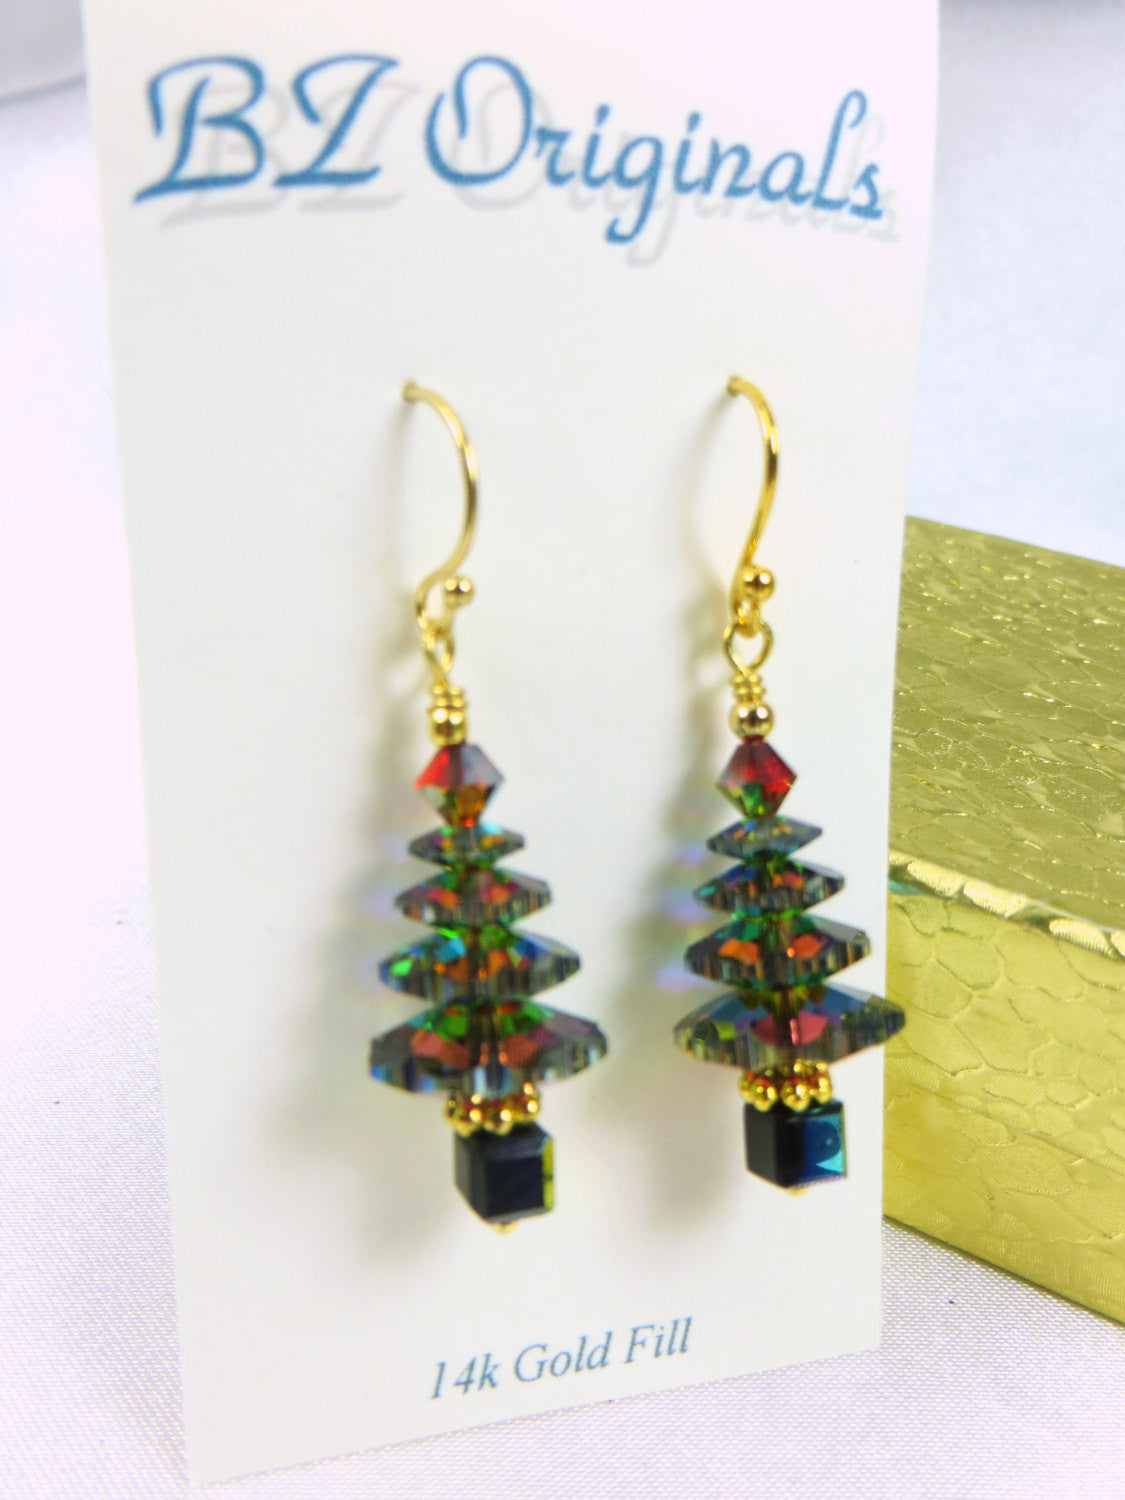 Christmas Tree Earrings in Swarovski Vitrail Medium on 14k Gold Fill Wires - Odyssey Creations